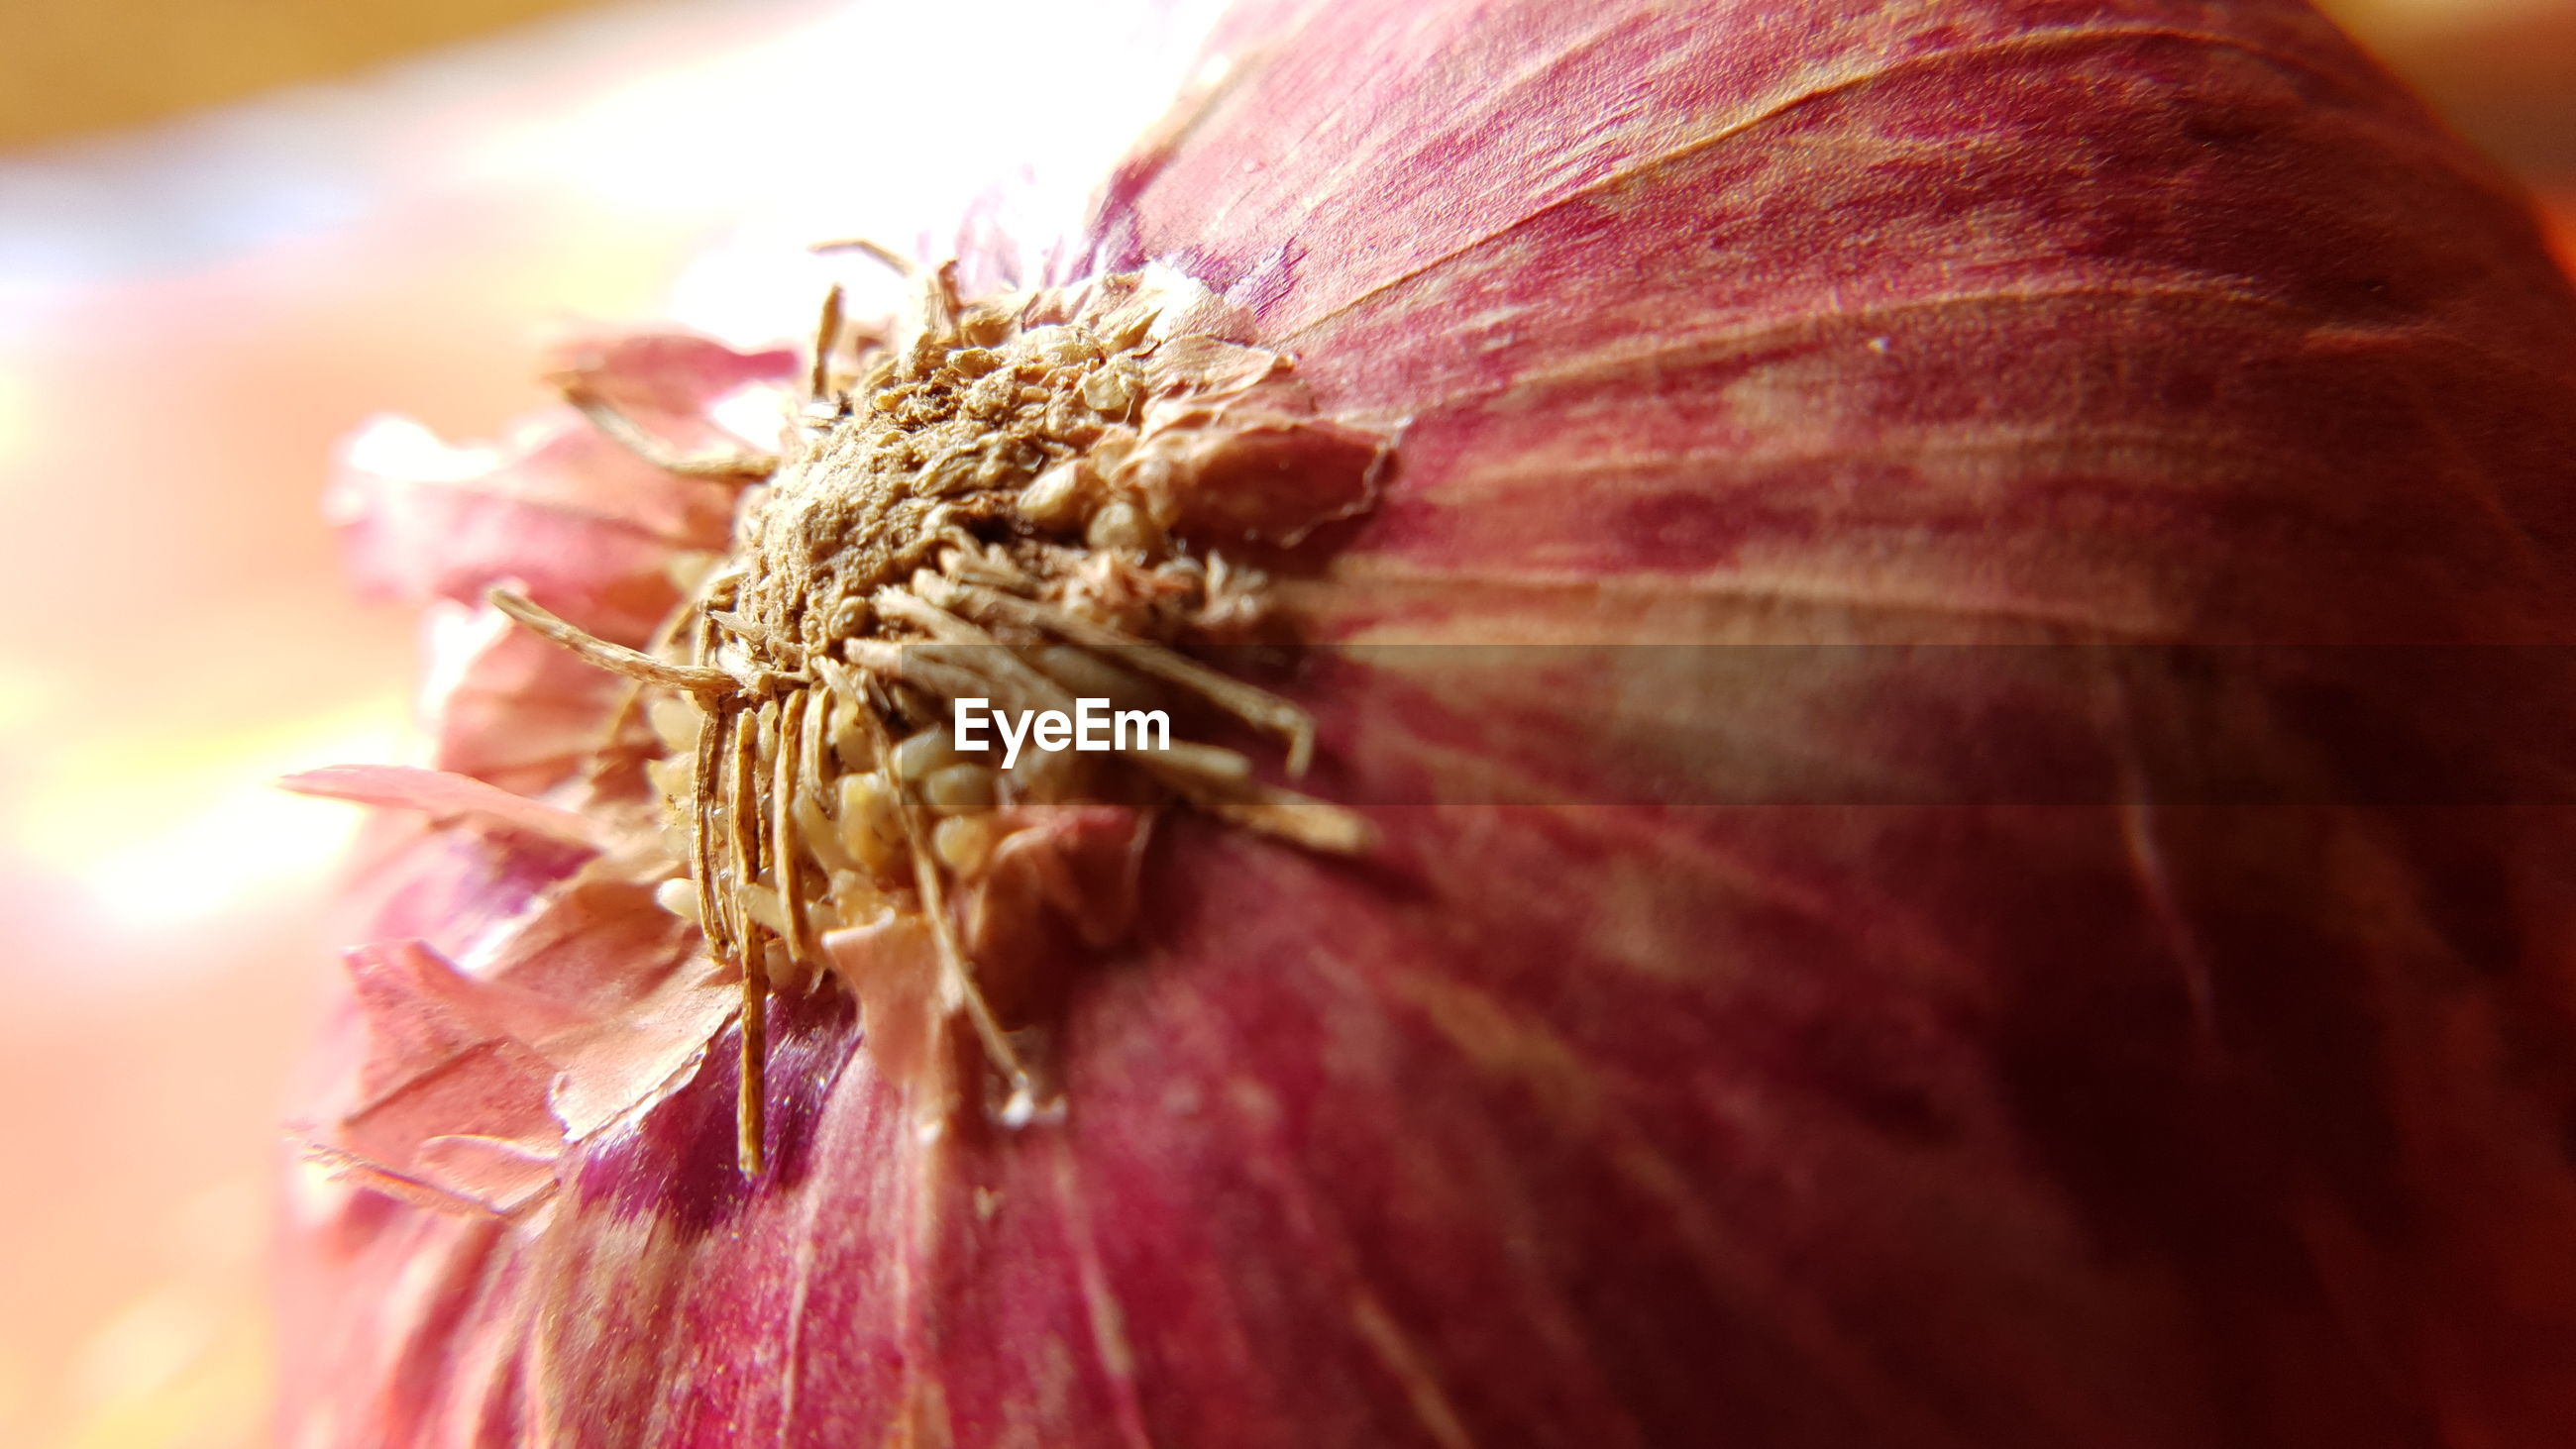 Close-up of an onion